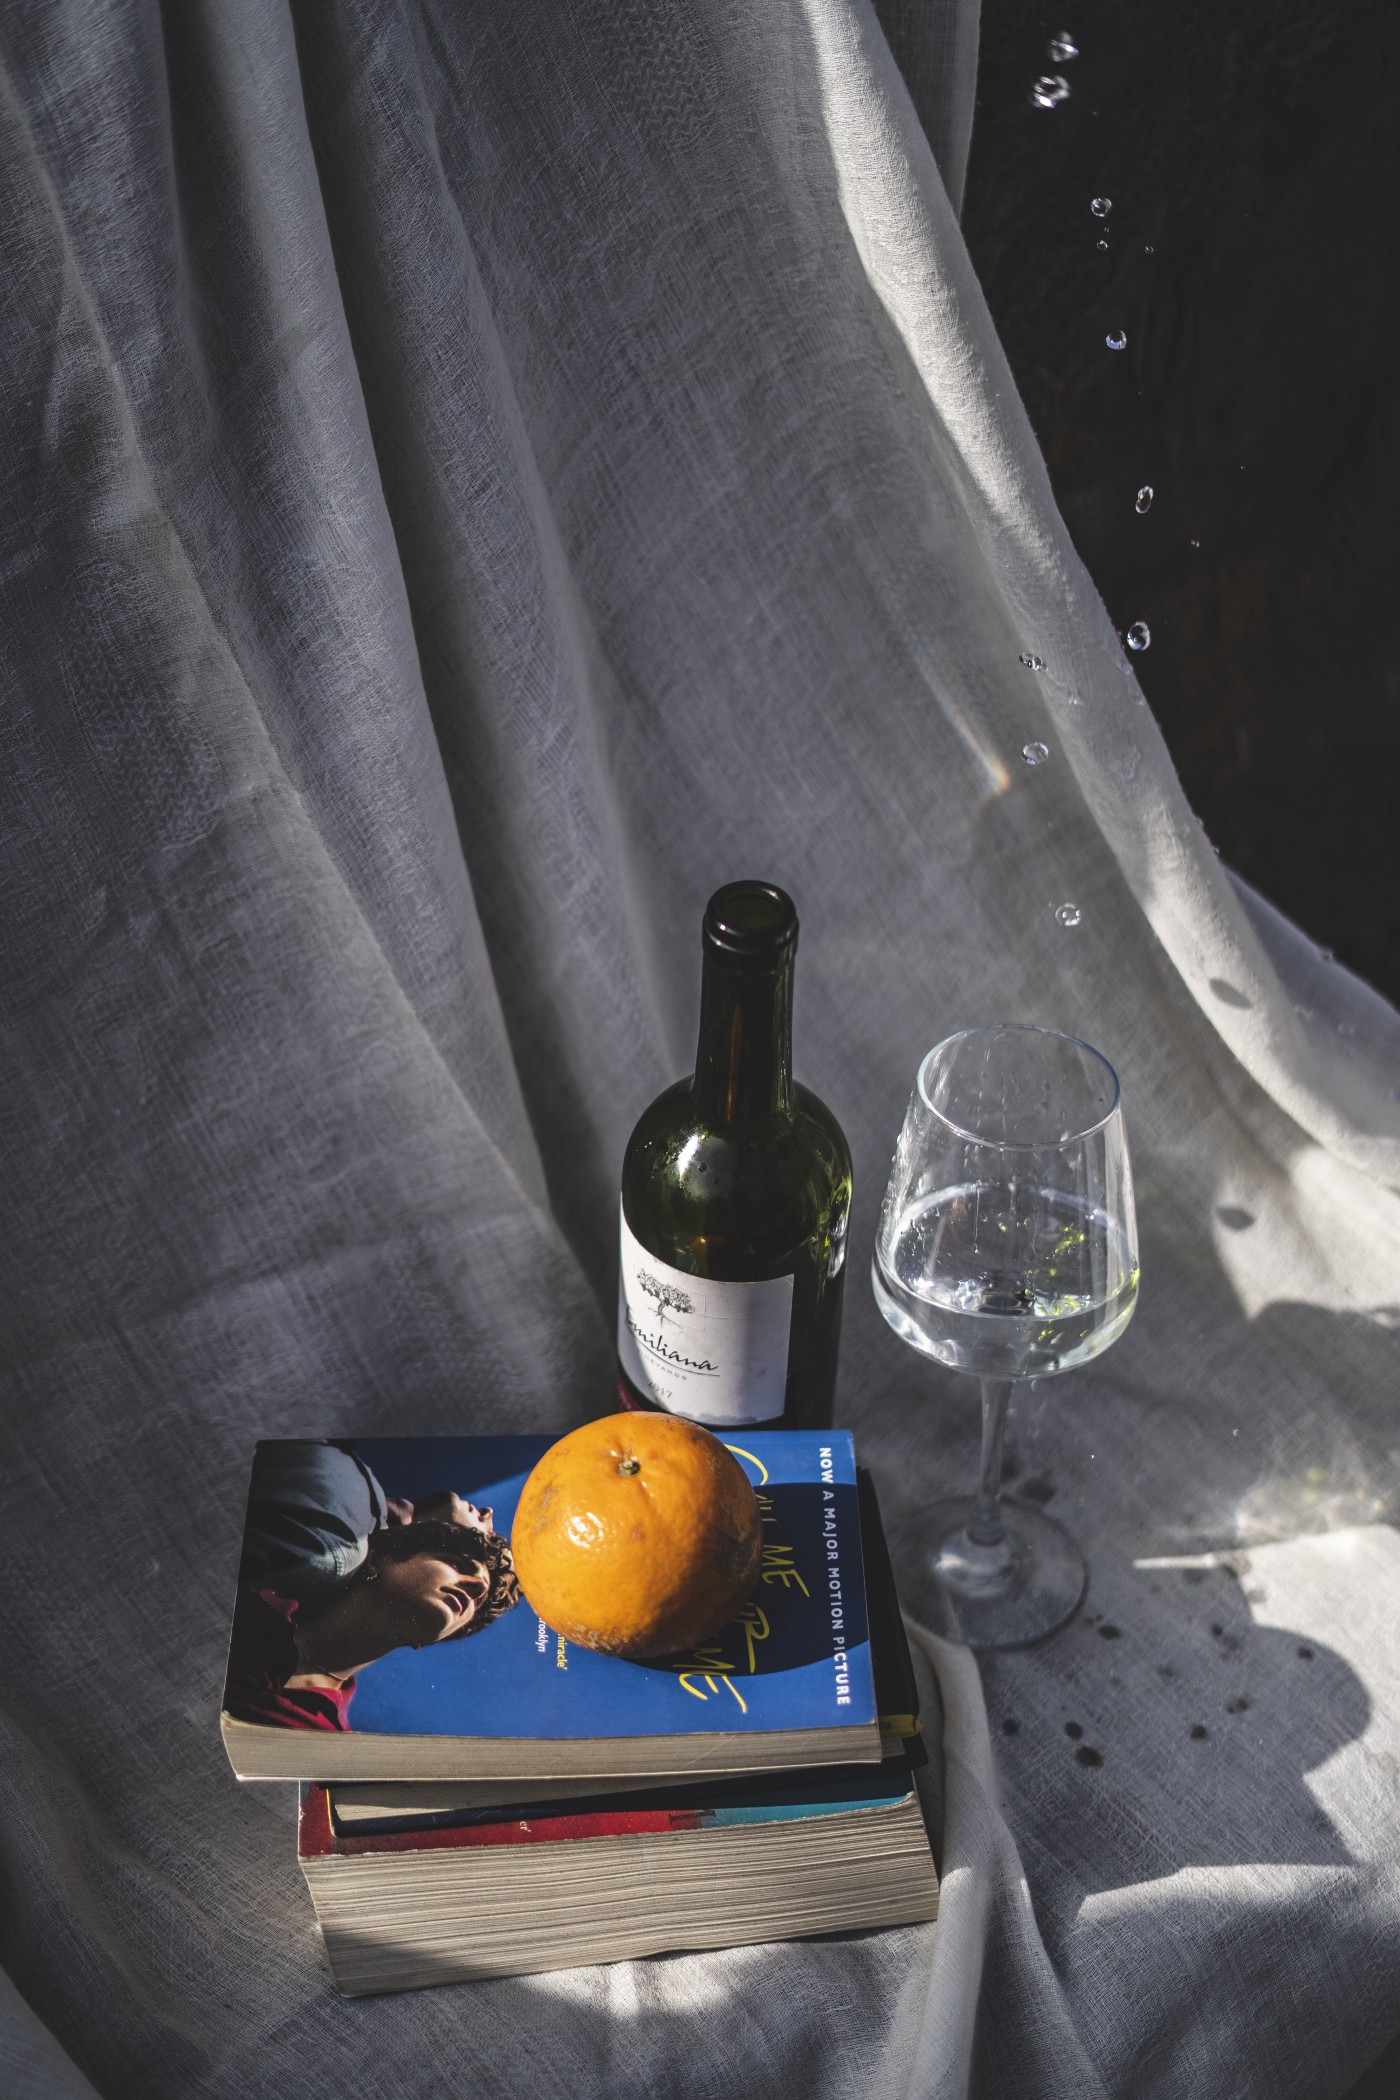 A bottle and wine glass with a stack of books